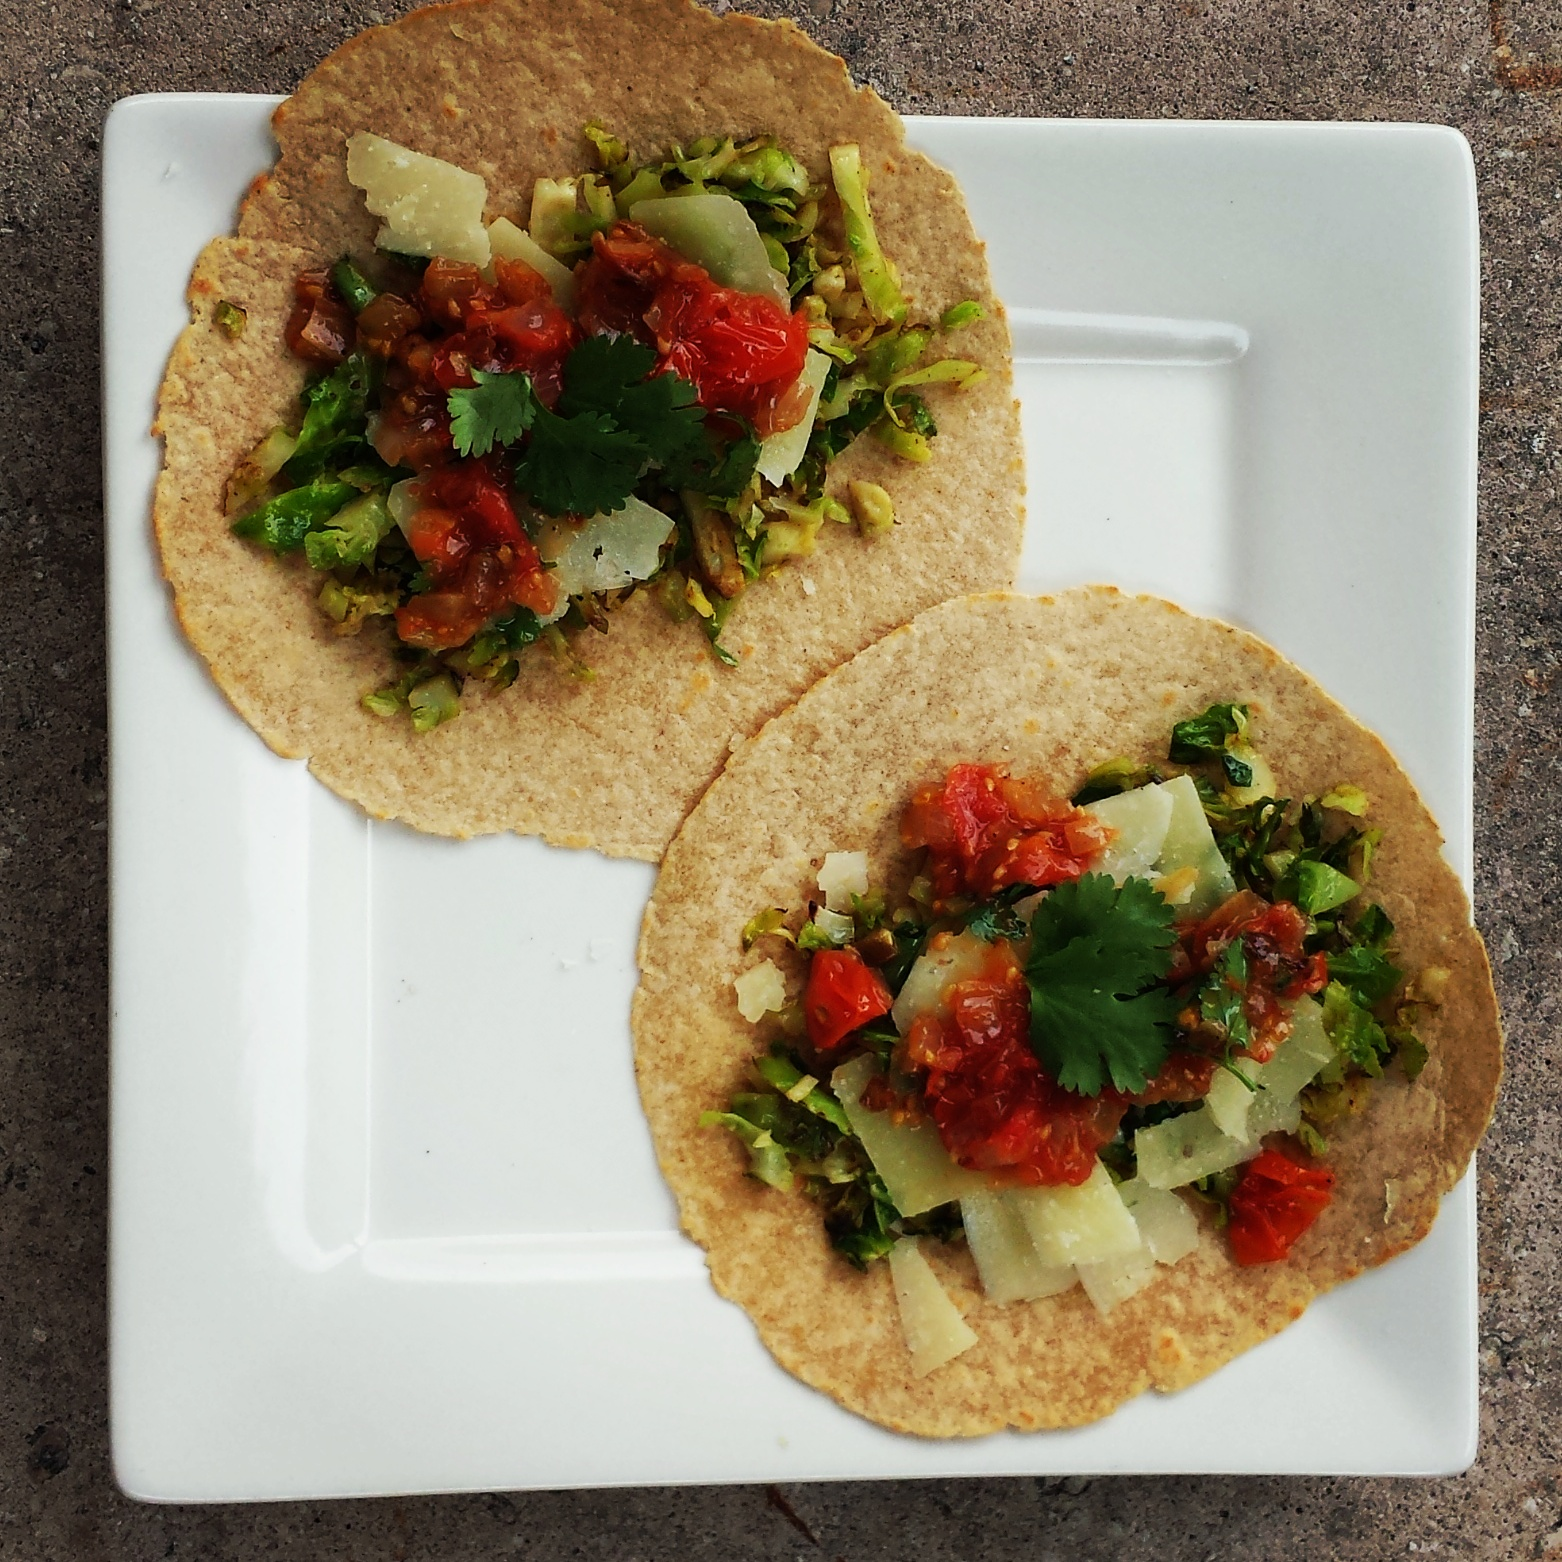 Brussels Sprout Tacos with Caramelized Shallot Salsa